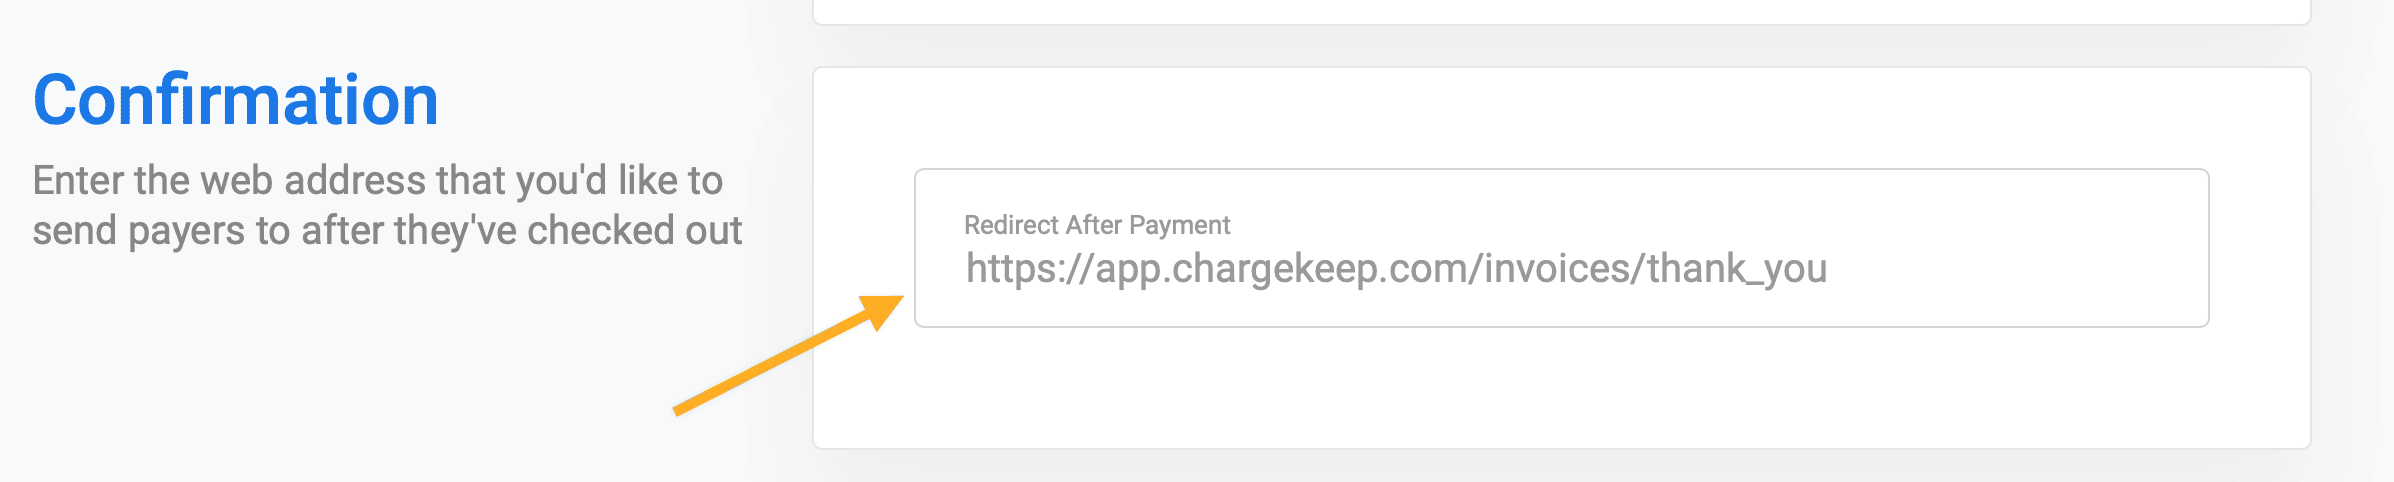 Redirecting users after payment Stripe